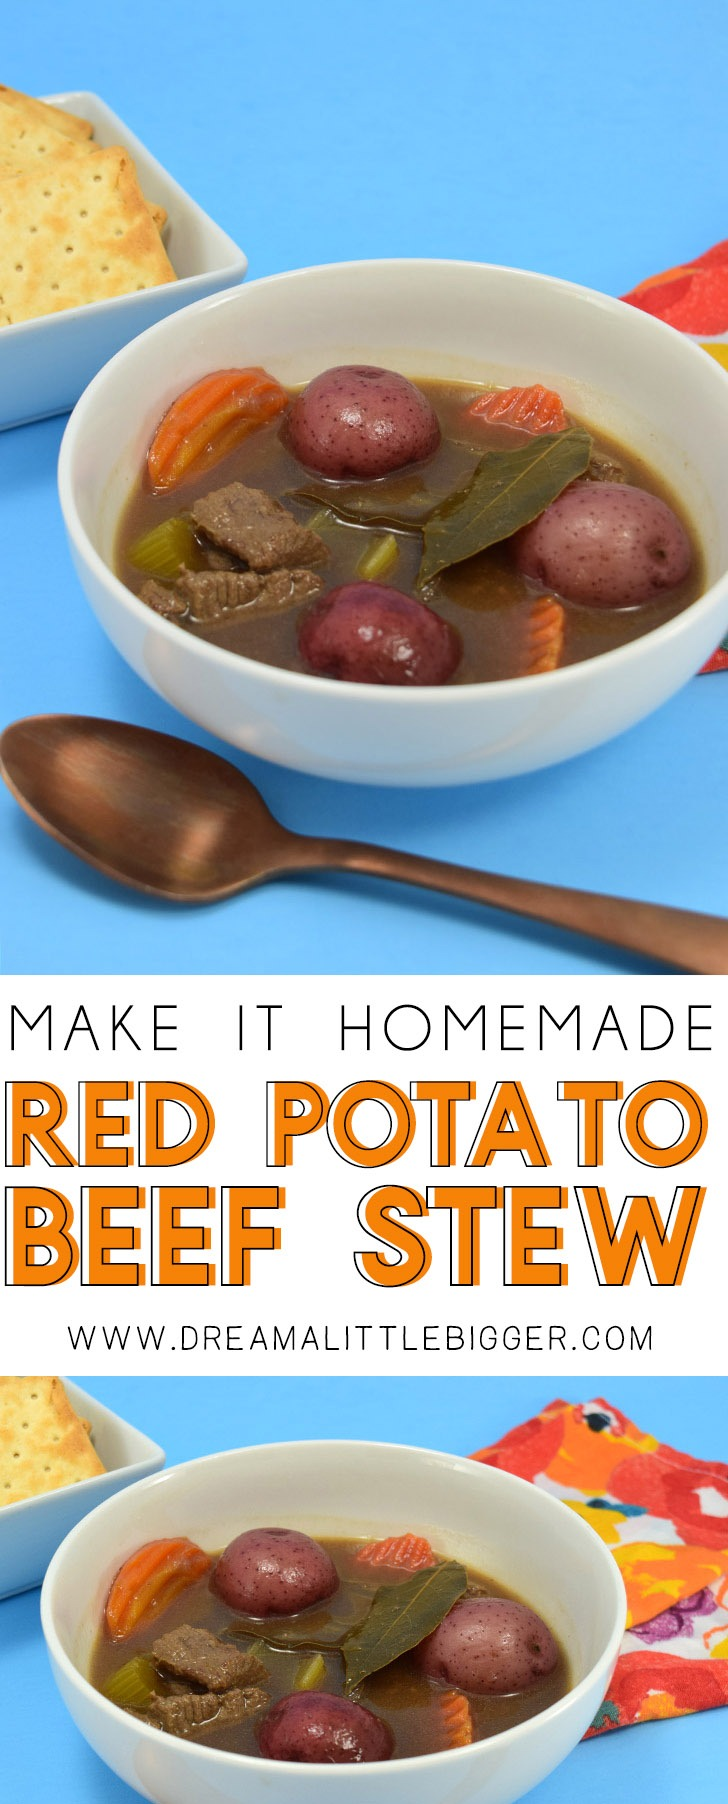 This red potato beef stew smells so heavenly while it cooks and the flavor is just amazing. It's one for our family recipe box!